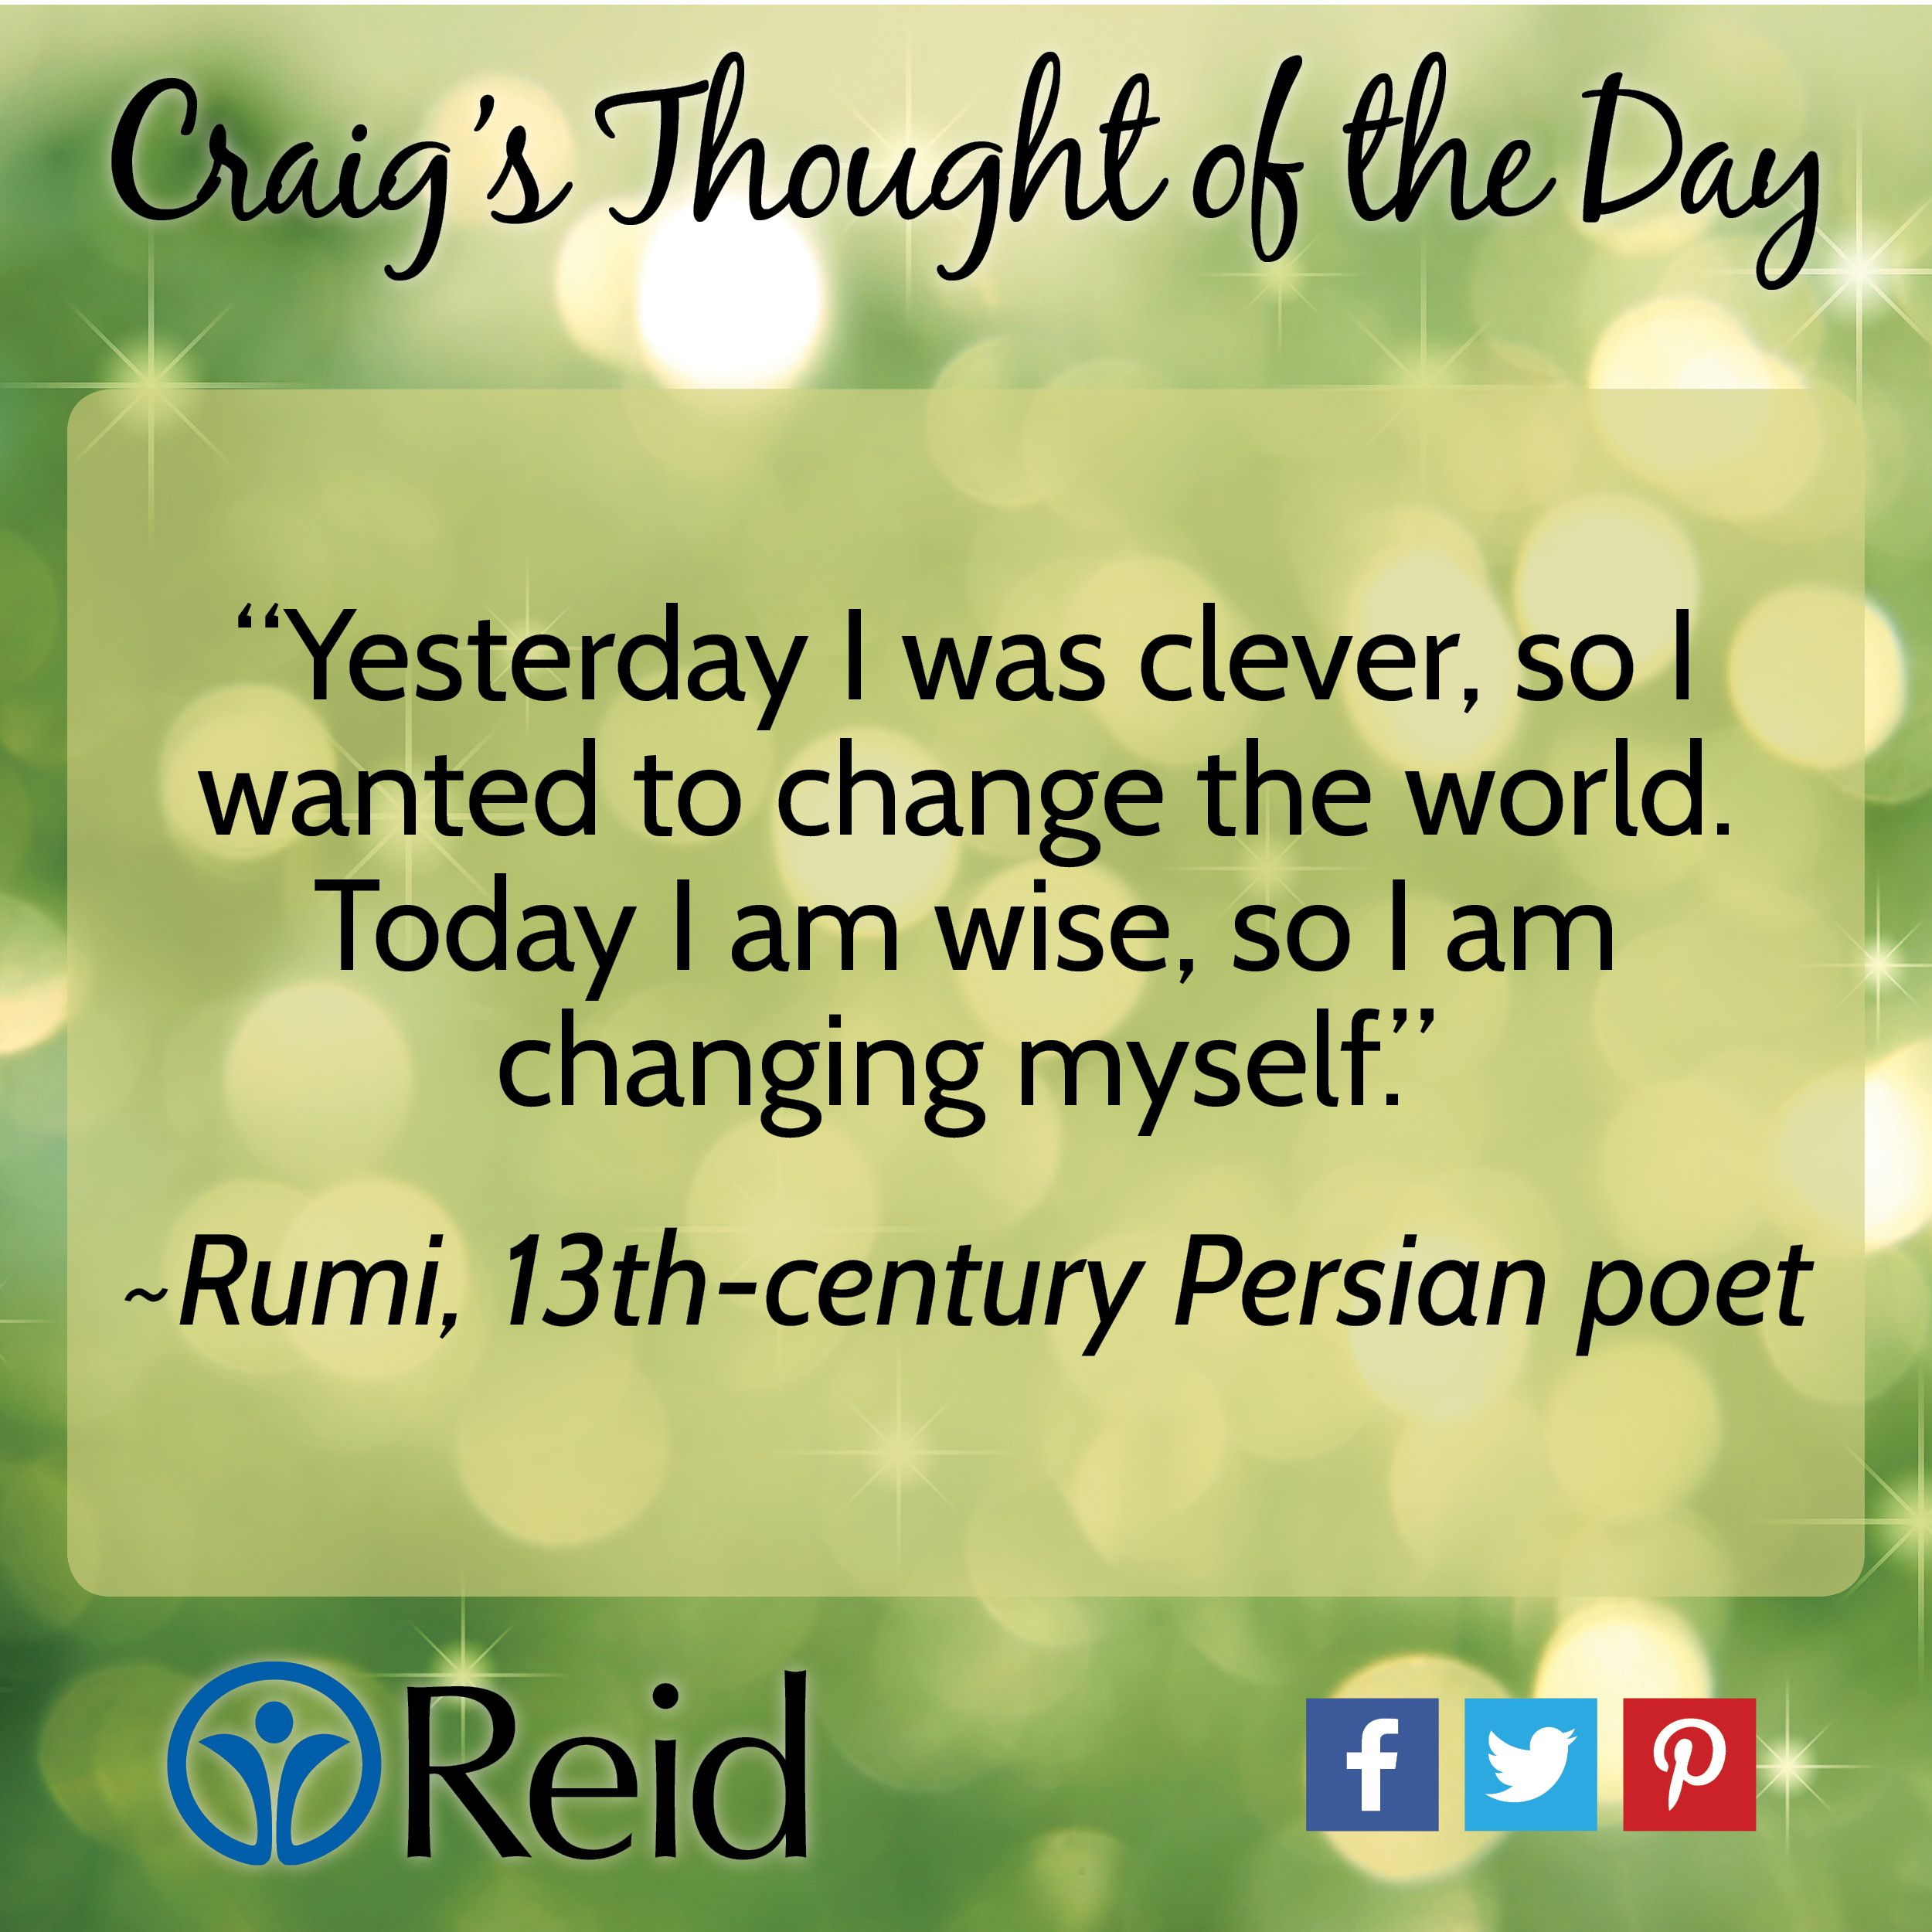 Poet Quotes Rumi 13Thcentury Persian Poet Quote  Thought Of The Day